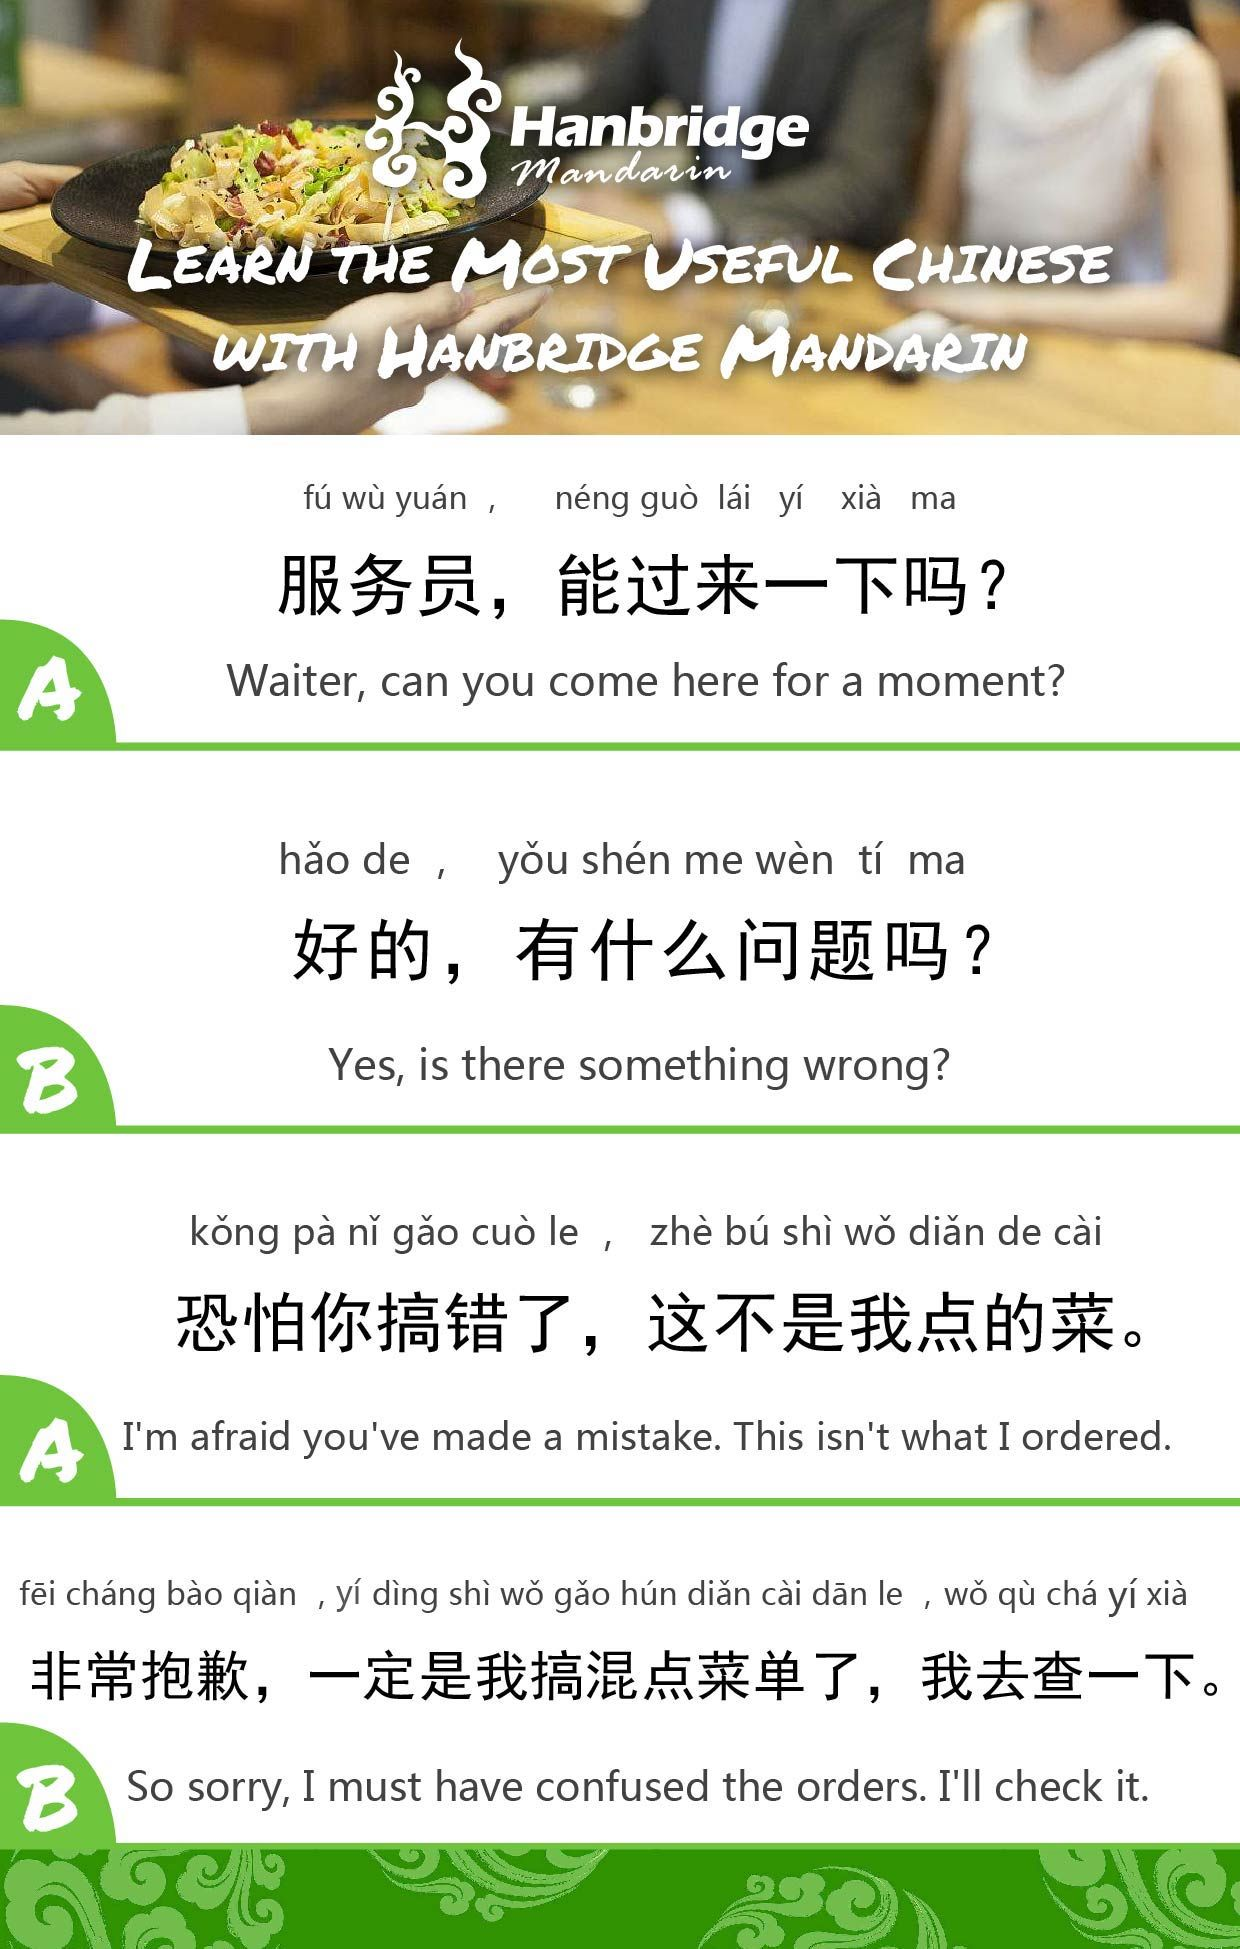 Frequently Used Chinese Sentences Order Chinese Food In A Restaurant Chinese Sentences Learn Chinese Mandarin Chinese